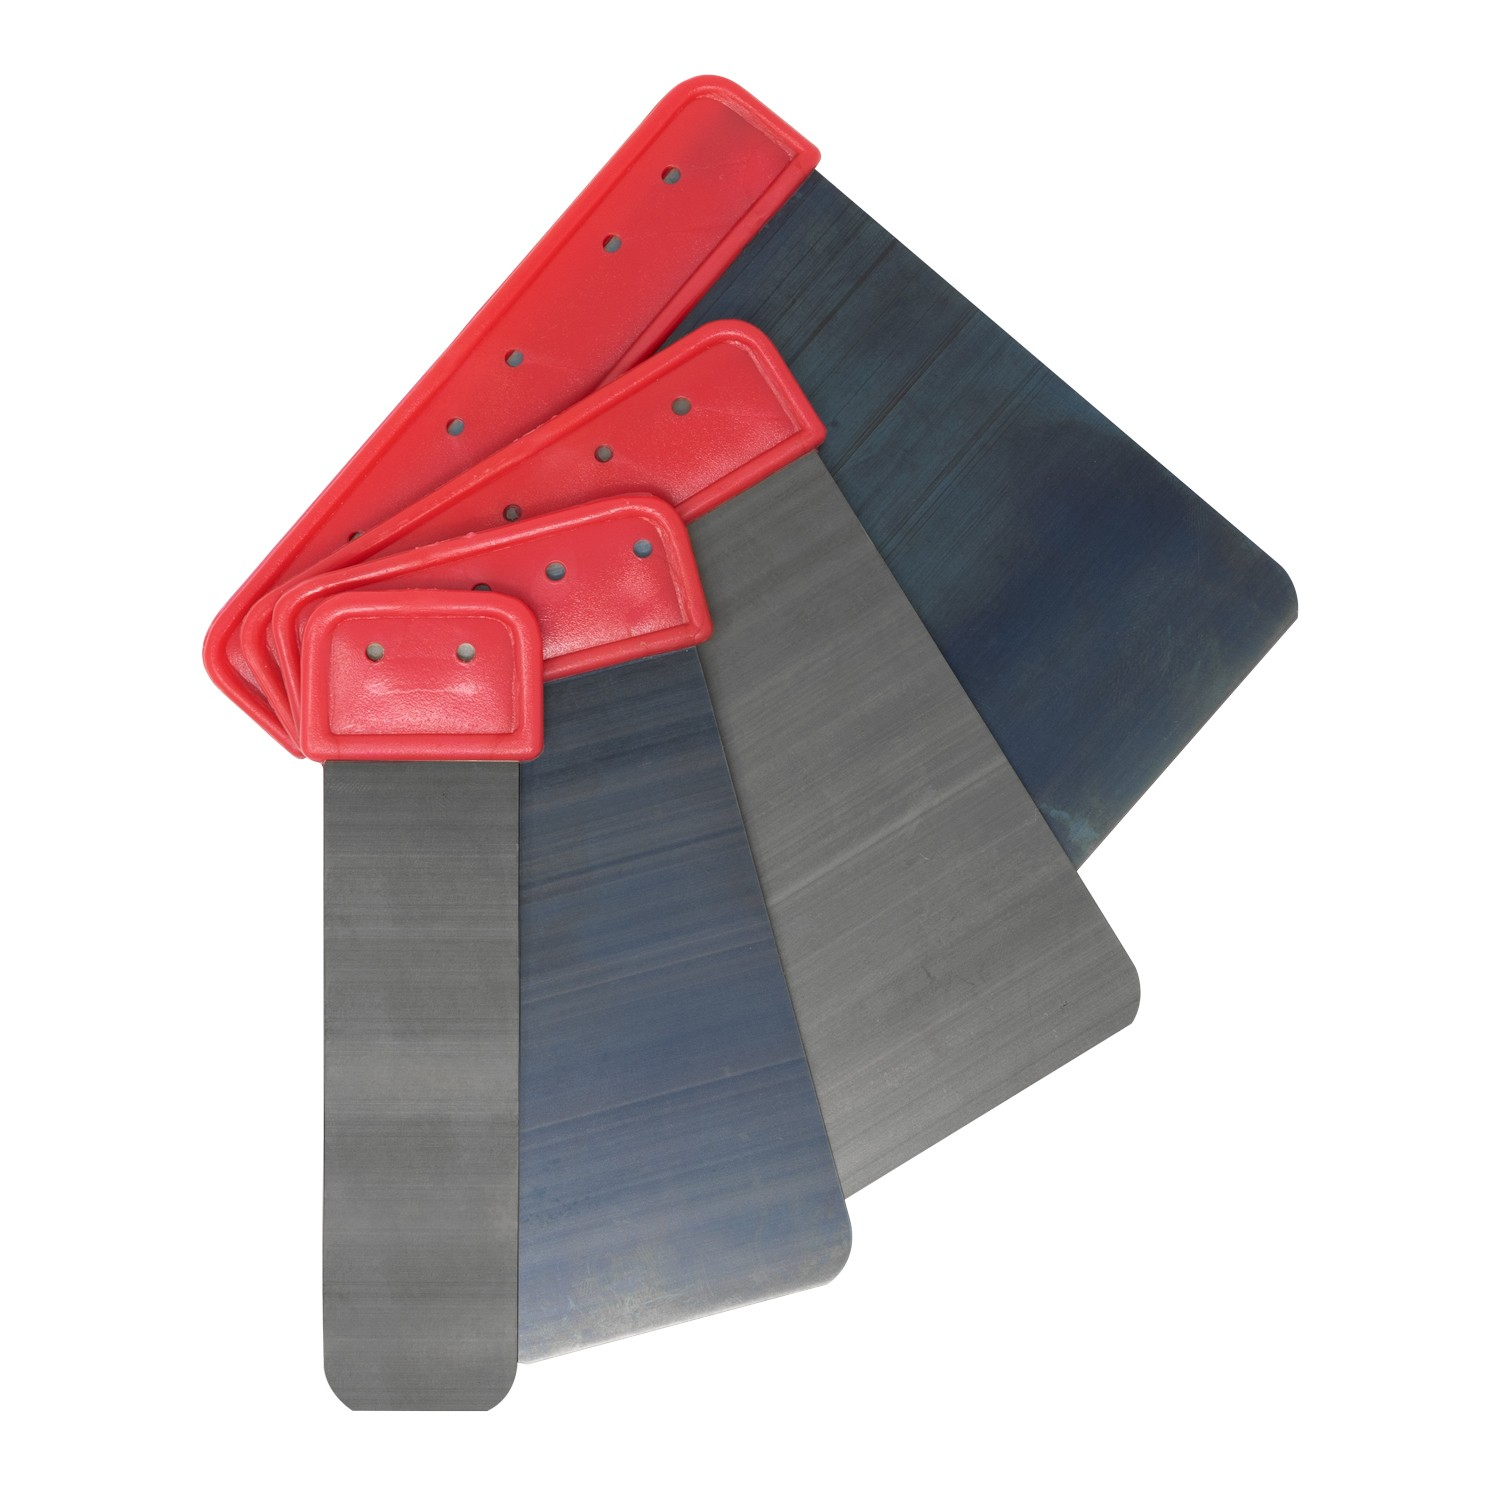 4pc Curved Edge Metal Spreader Set